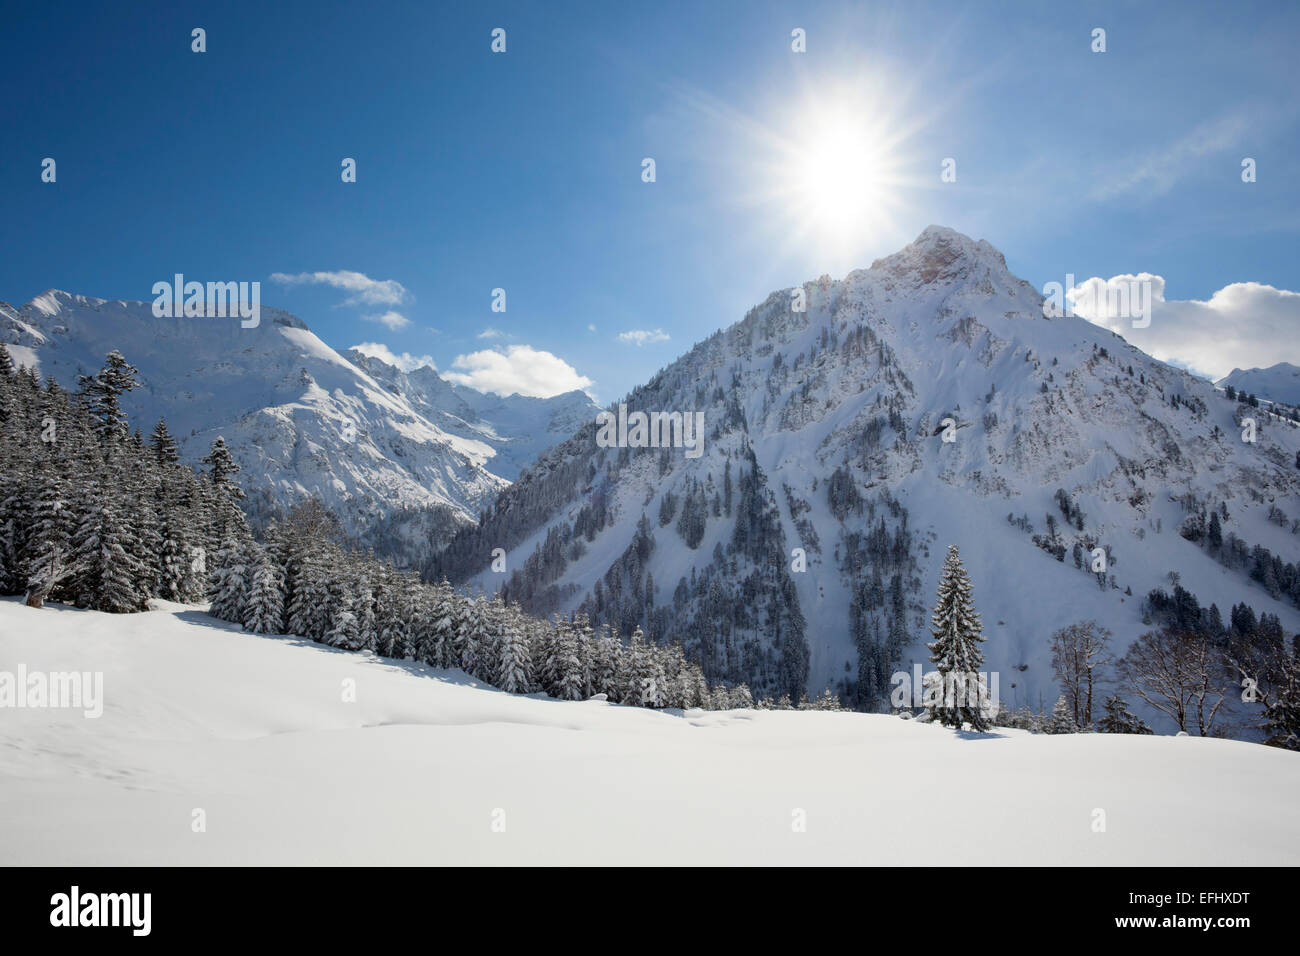 Winter landscape at Hintersteiner Tal, near Bad Hindelang, view to Giebel, Allgaeu, Bavaria, Germany Stock Photo